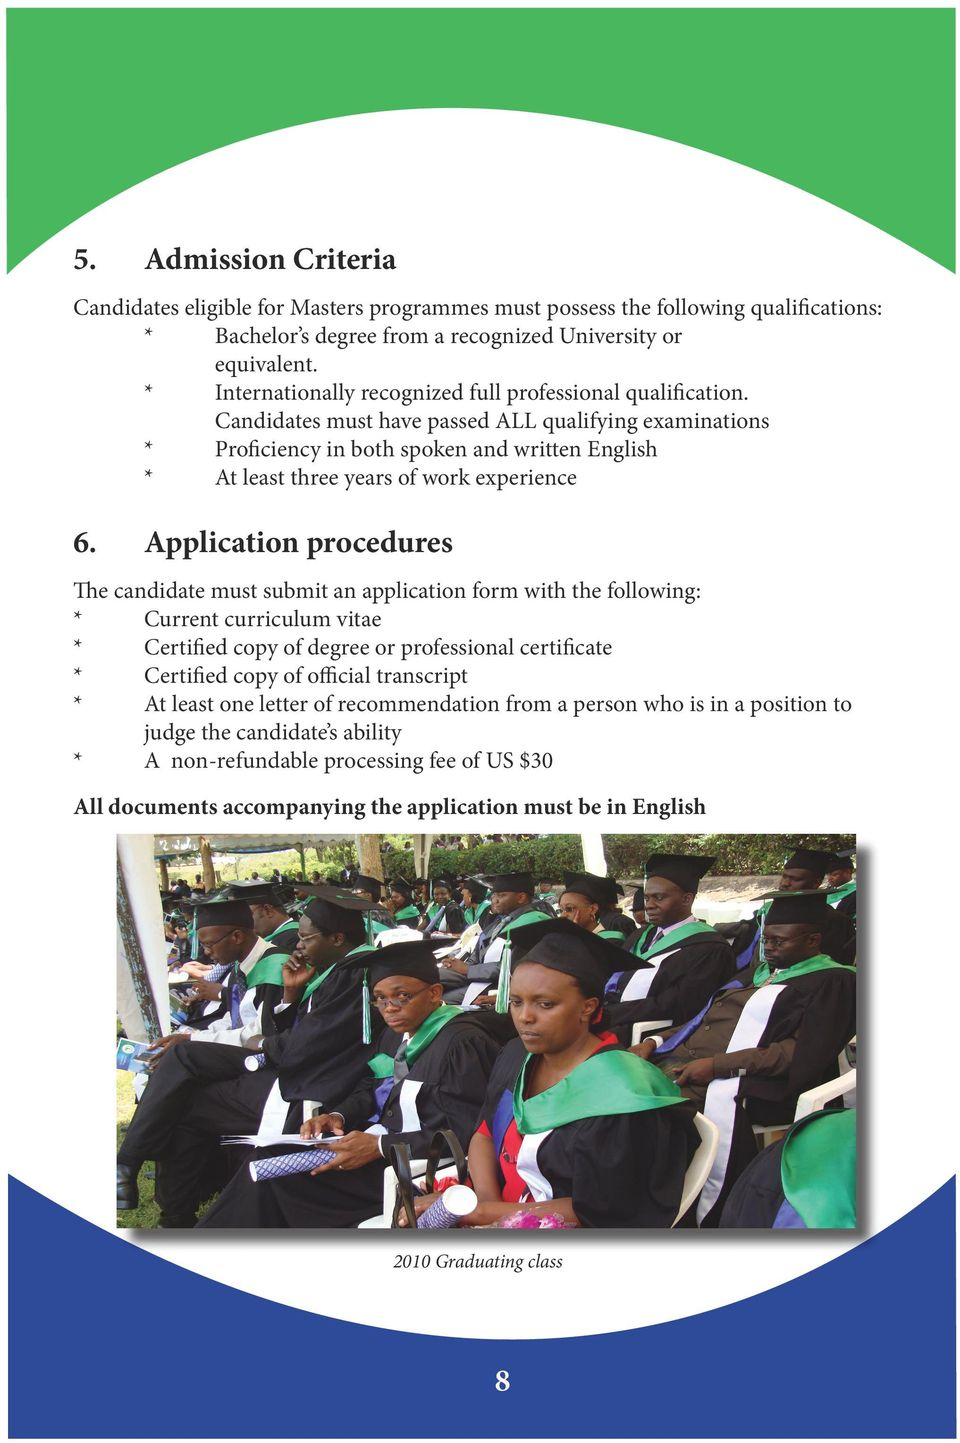 Candidates must have passed ALL qualifying examinations * Proficiency in both spoken and written English * At least three years of work experience 6.